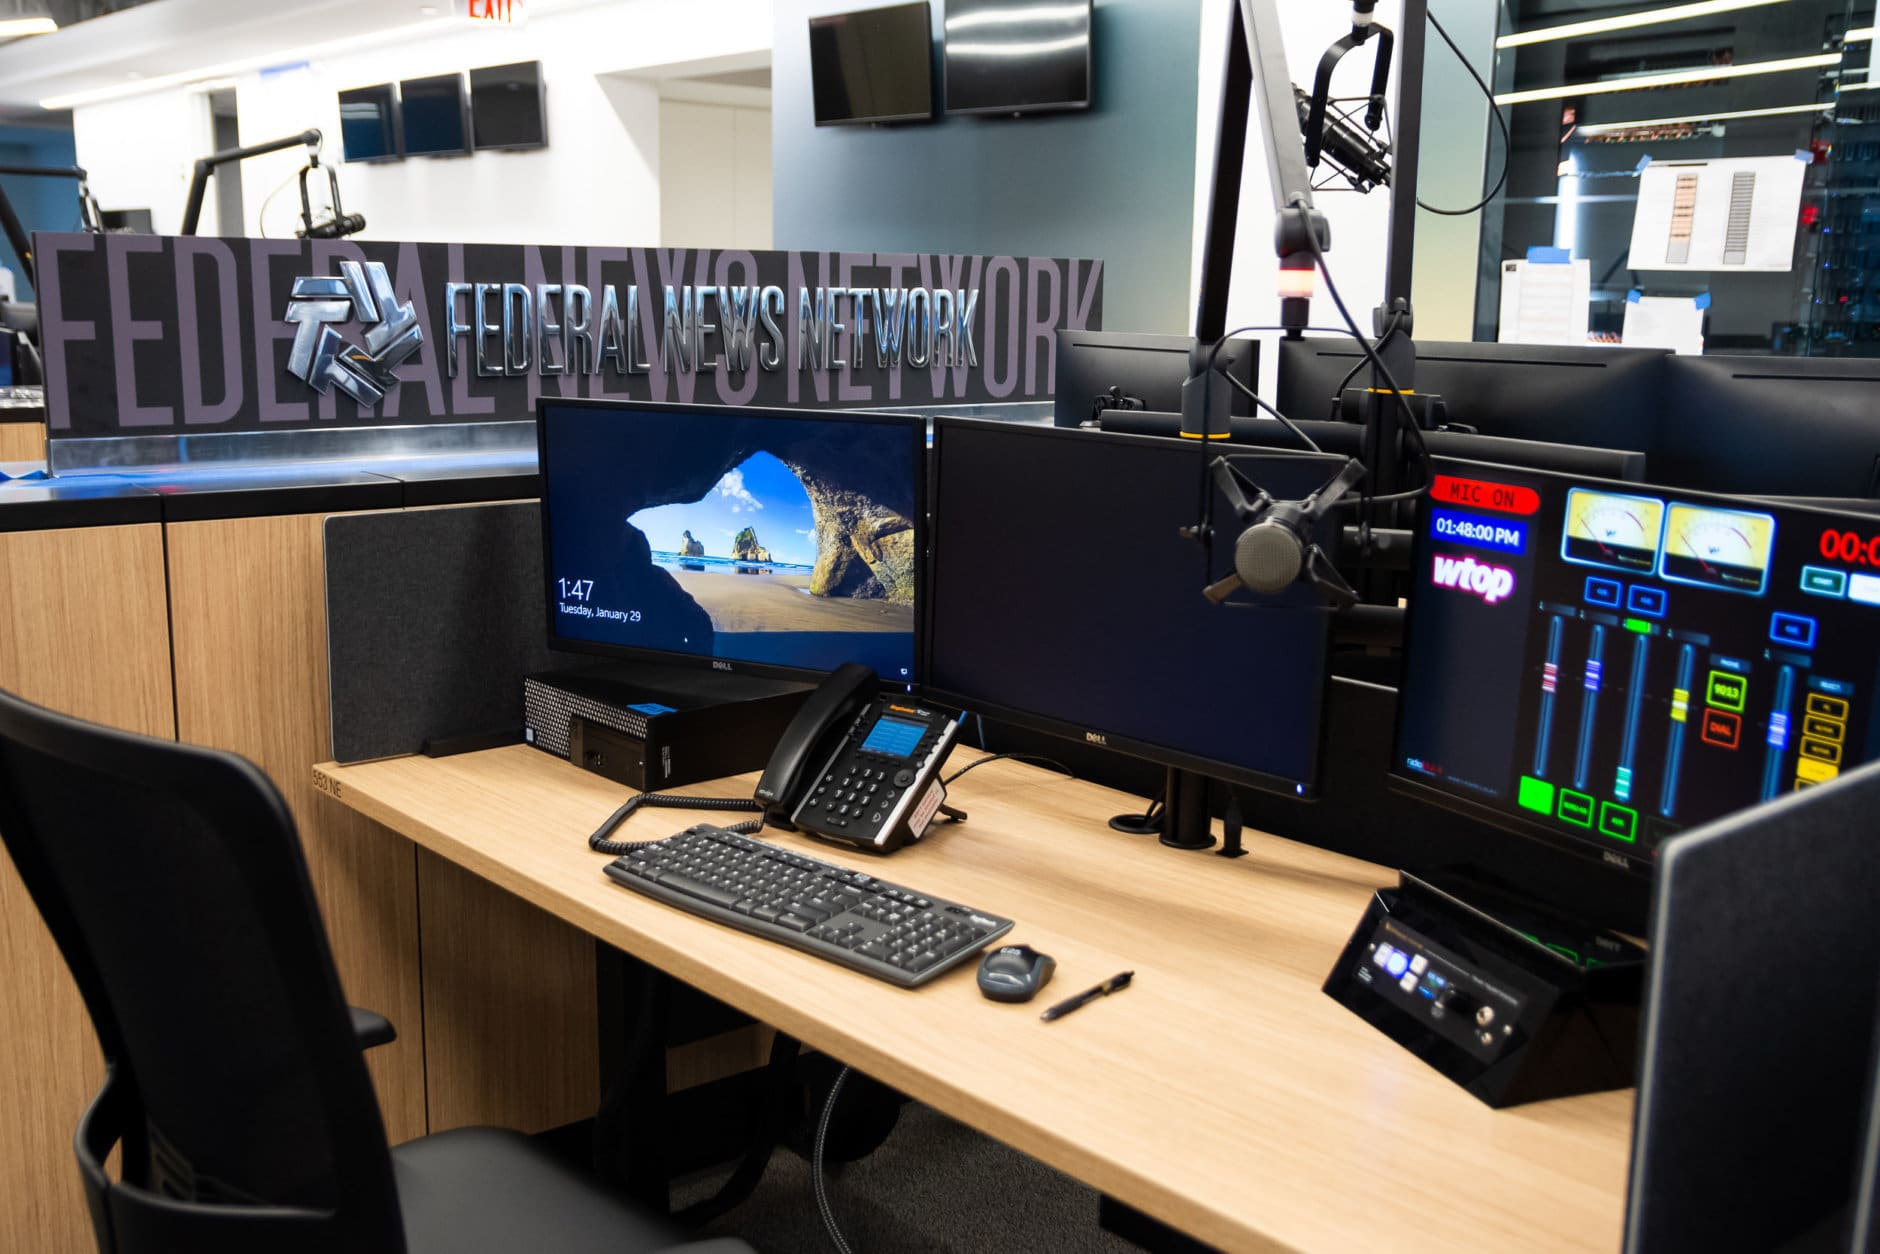 A typical work station at the recently rebranded Federal News Network, WTOP's sister station providing news for federal employees. Mere seconds from the WTOP side of the office, the new building will be the first time both WTOP and WFED have shared the same floor space. (WTOP/Alejandro Alvarez)